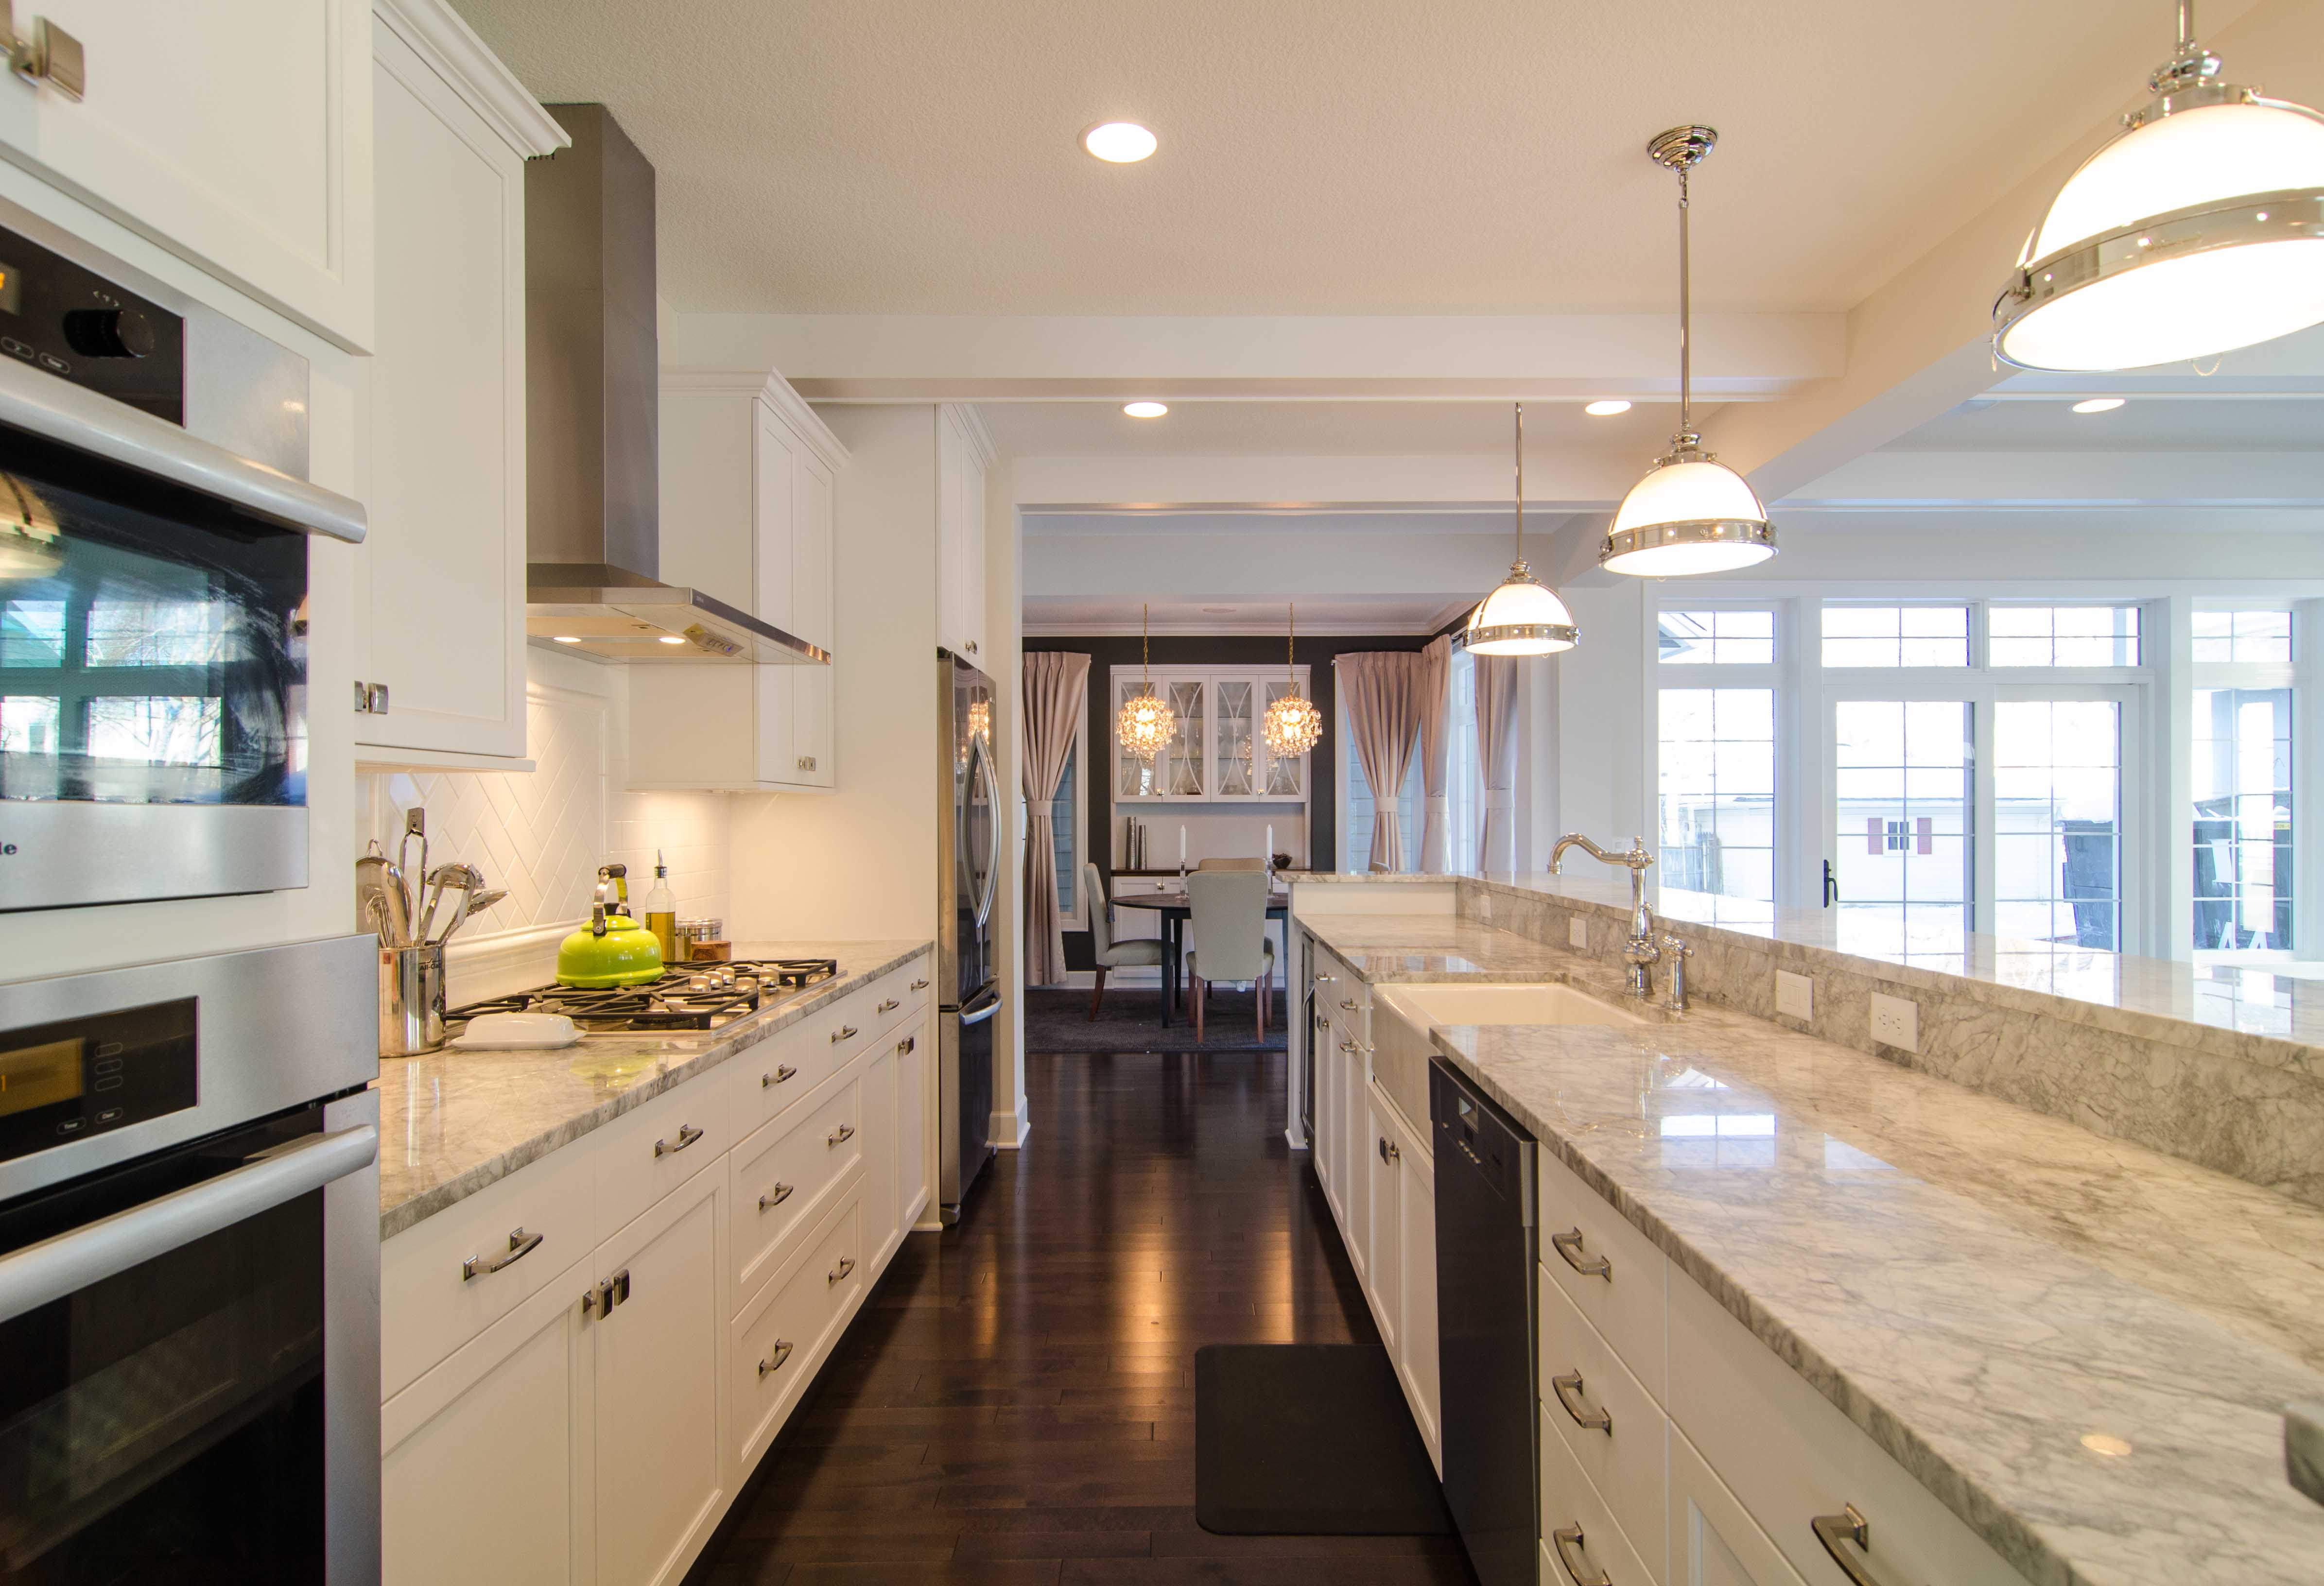 Galley Style Kitchen Ideas 30 Beautiful Galley Kitchen Design Ideas Decoration Love